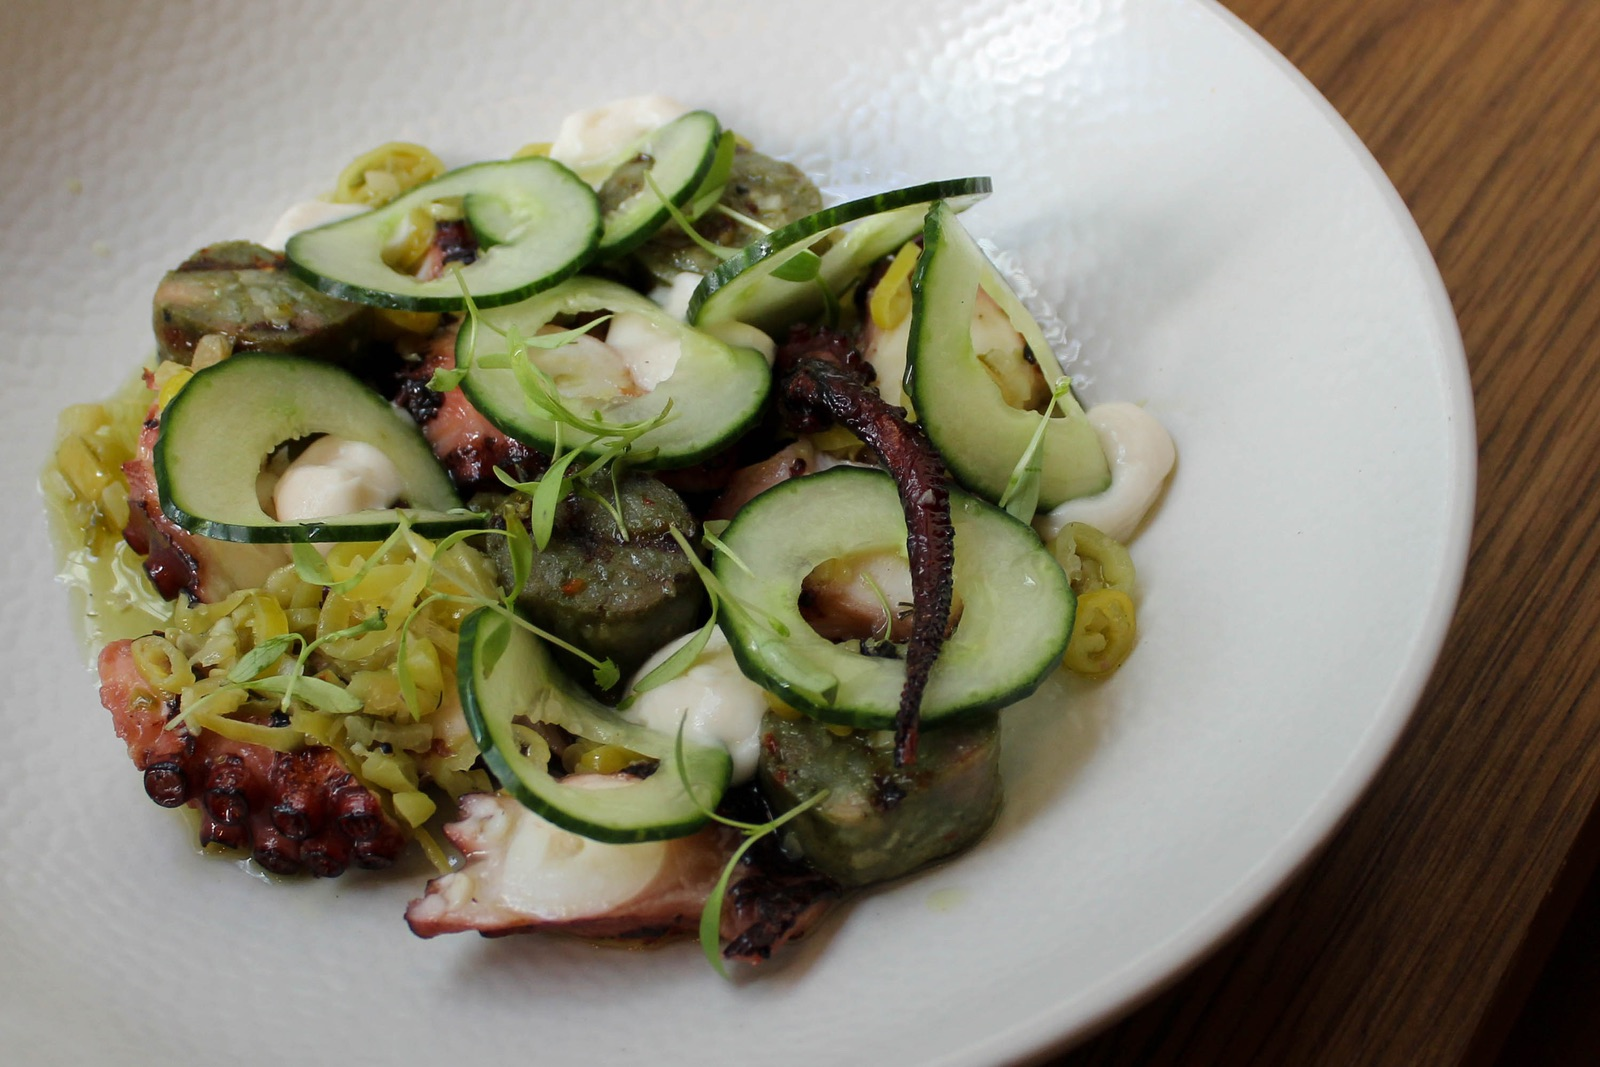 Grilled Fremantle octopus, green chorizo & whipped cod roe $22.00 - Availability: Lunch and Dinner